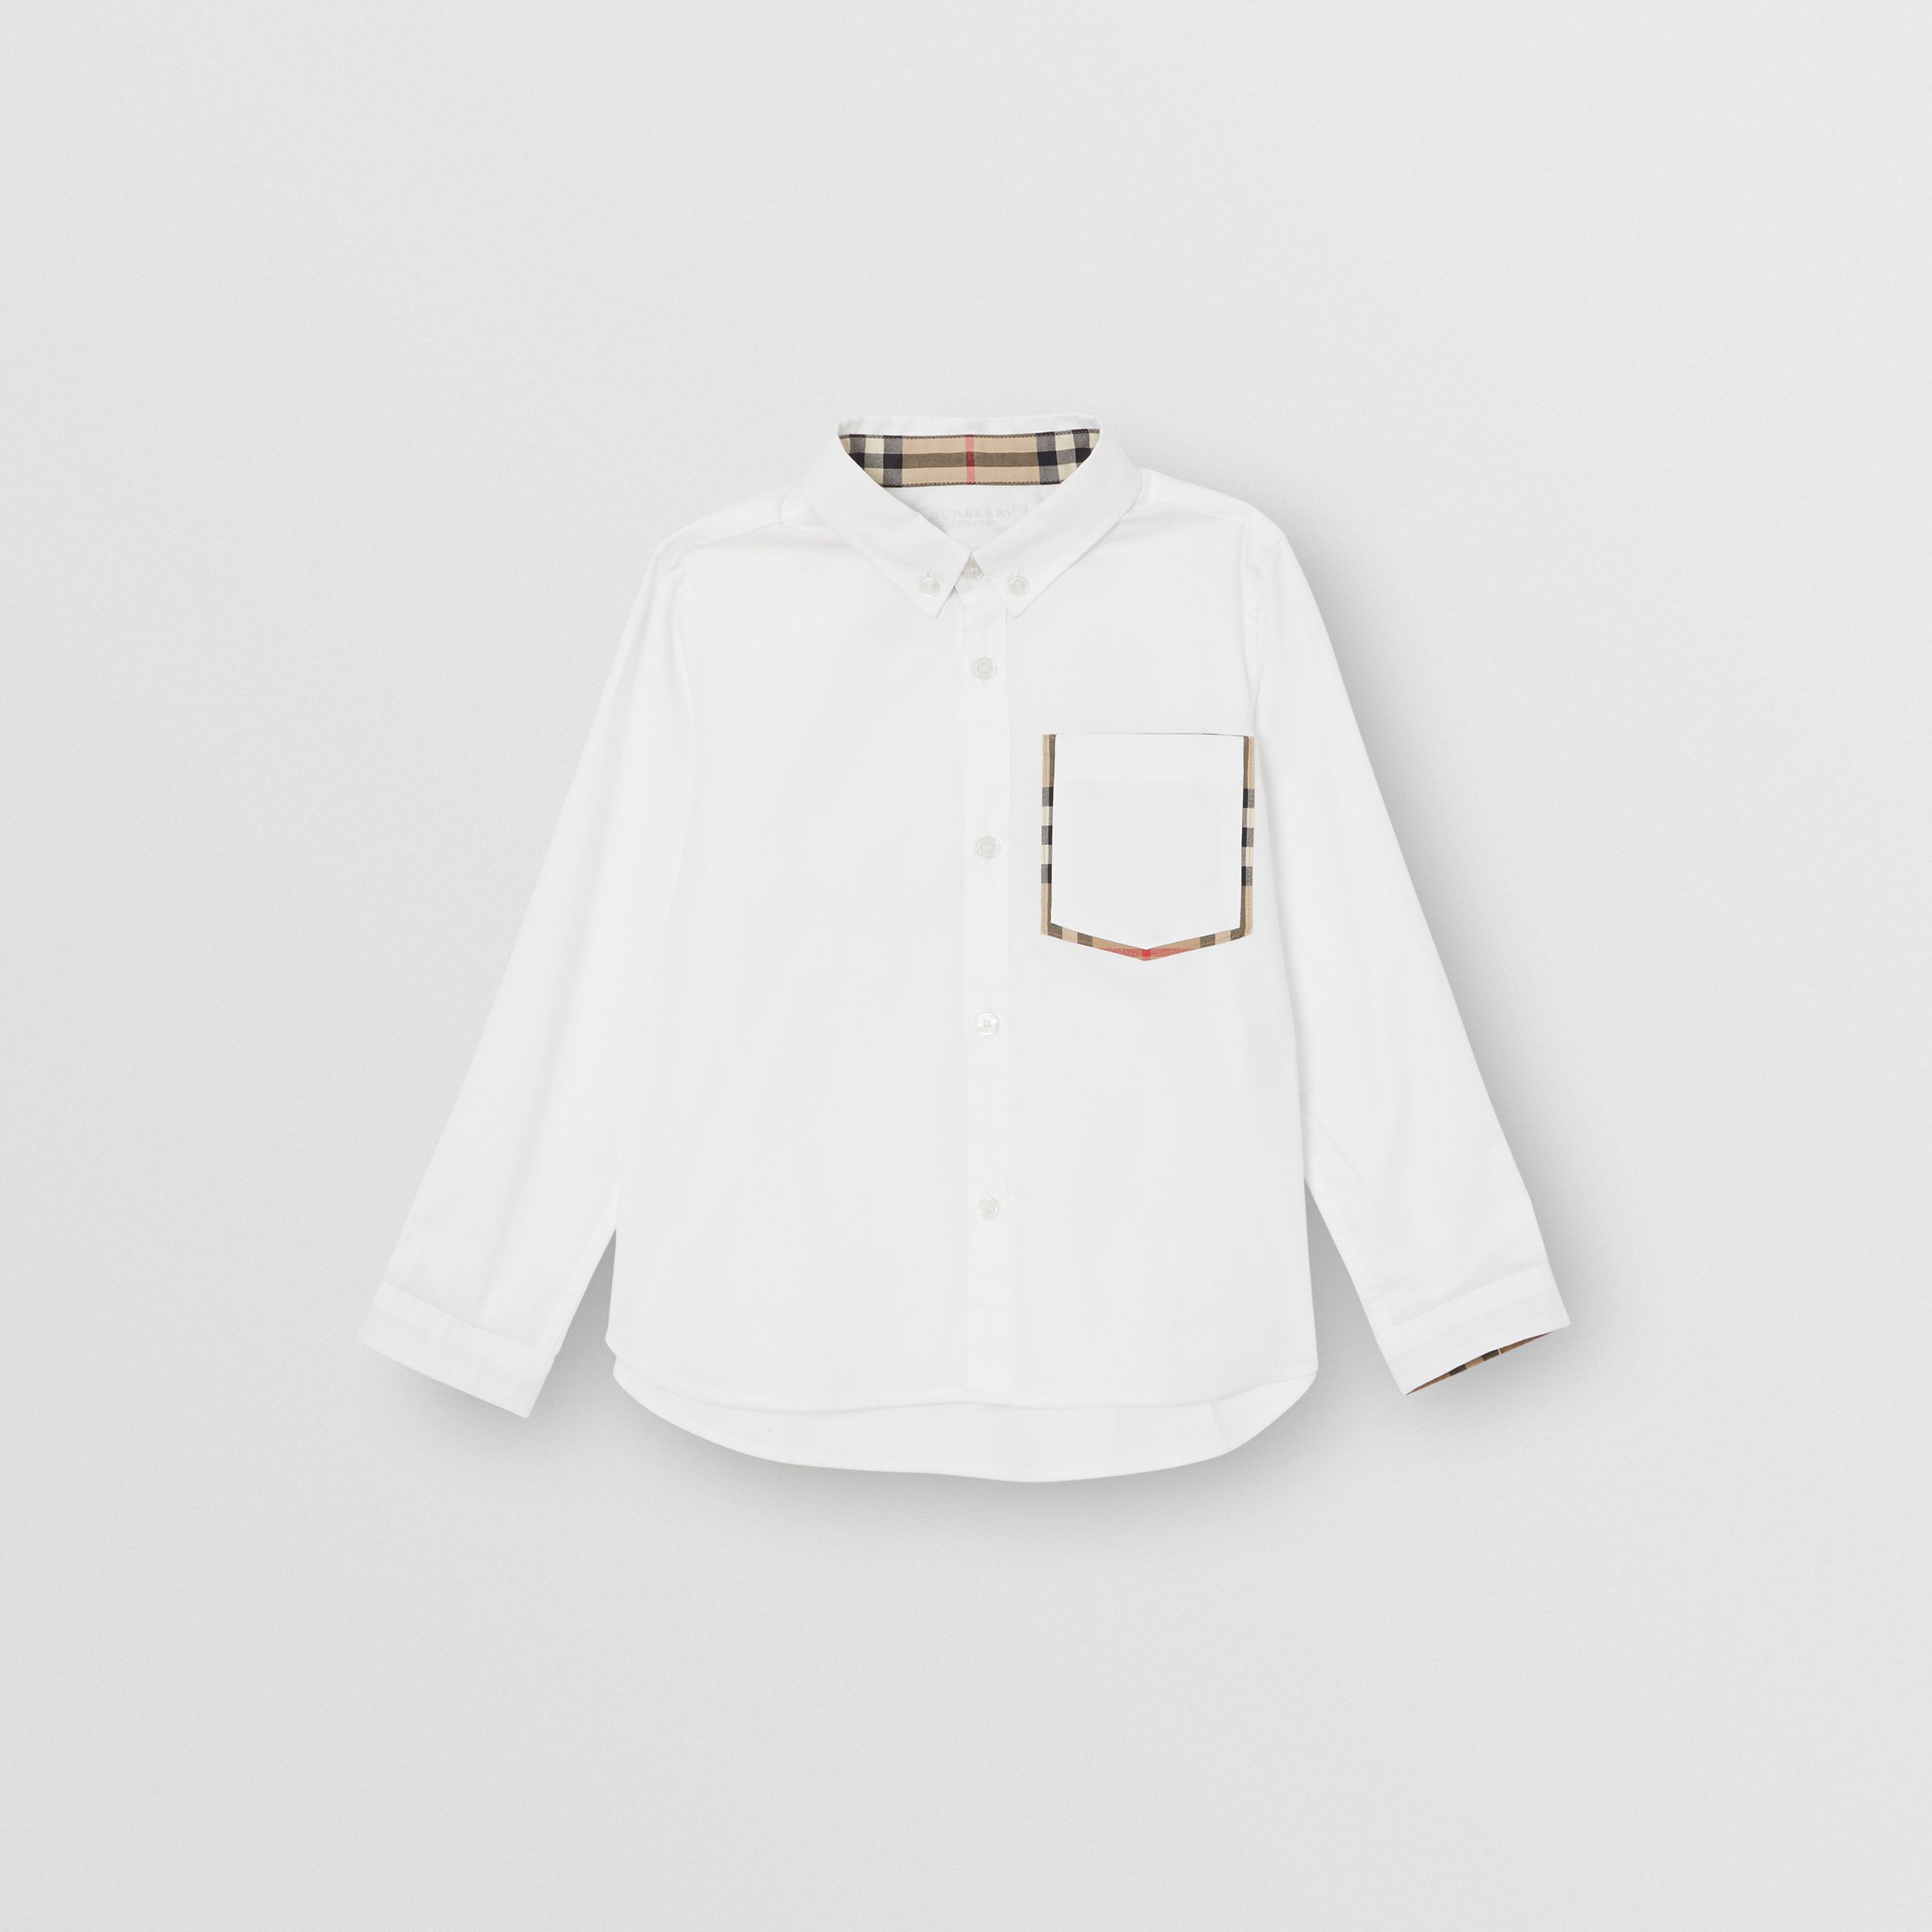 Check Detail Cotton Oxford Shirt in White - Children | Burberry - 1